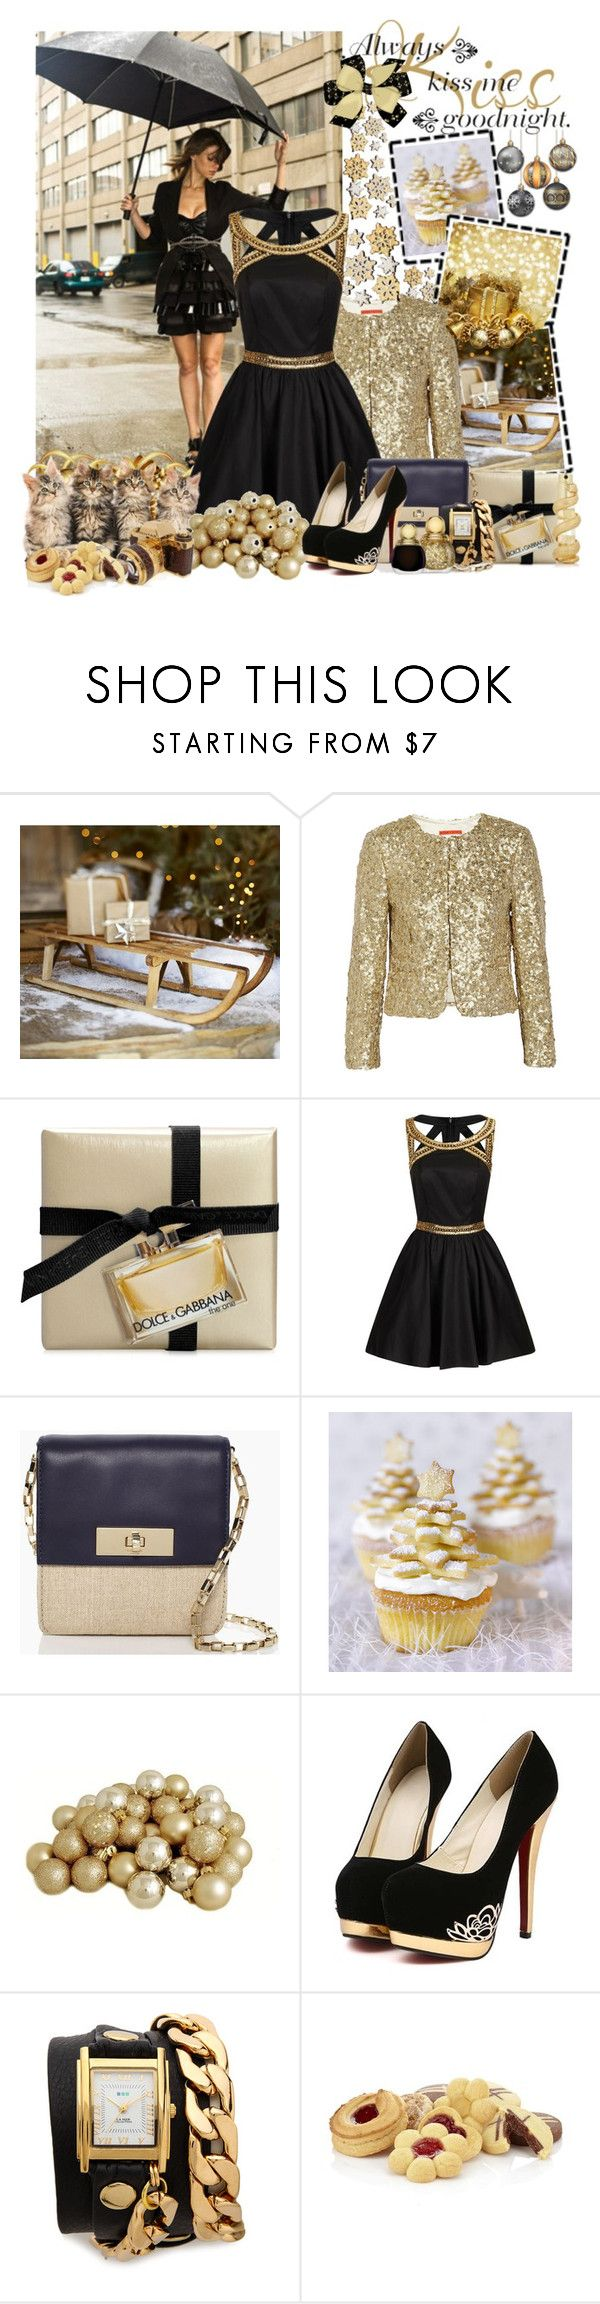 """Starlight, black holes and revelations"" by serenair ❤ liked on Polyvore featuring Pottery Barn, Alice + Olivia, Dolce&Gabbana, Chi Chi, Kate Spade, La Mer, Edition, Harrods and Kilian"